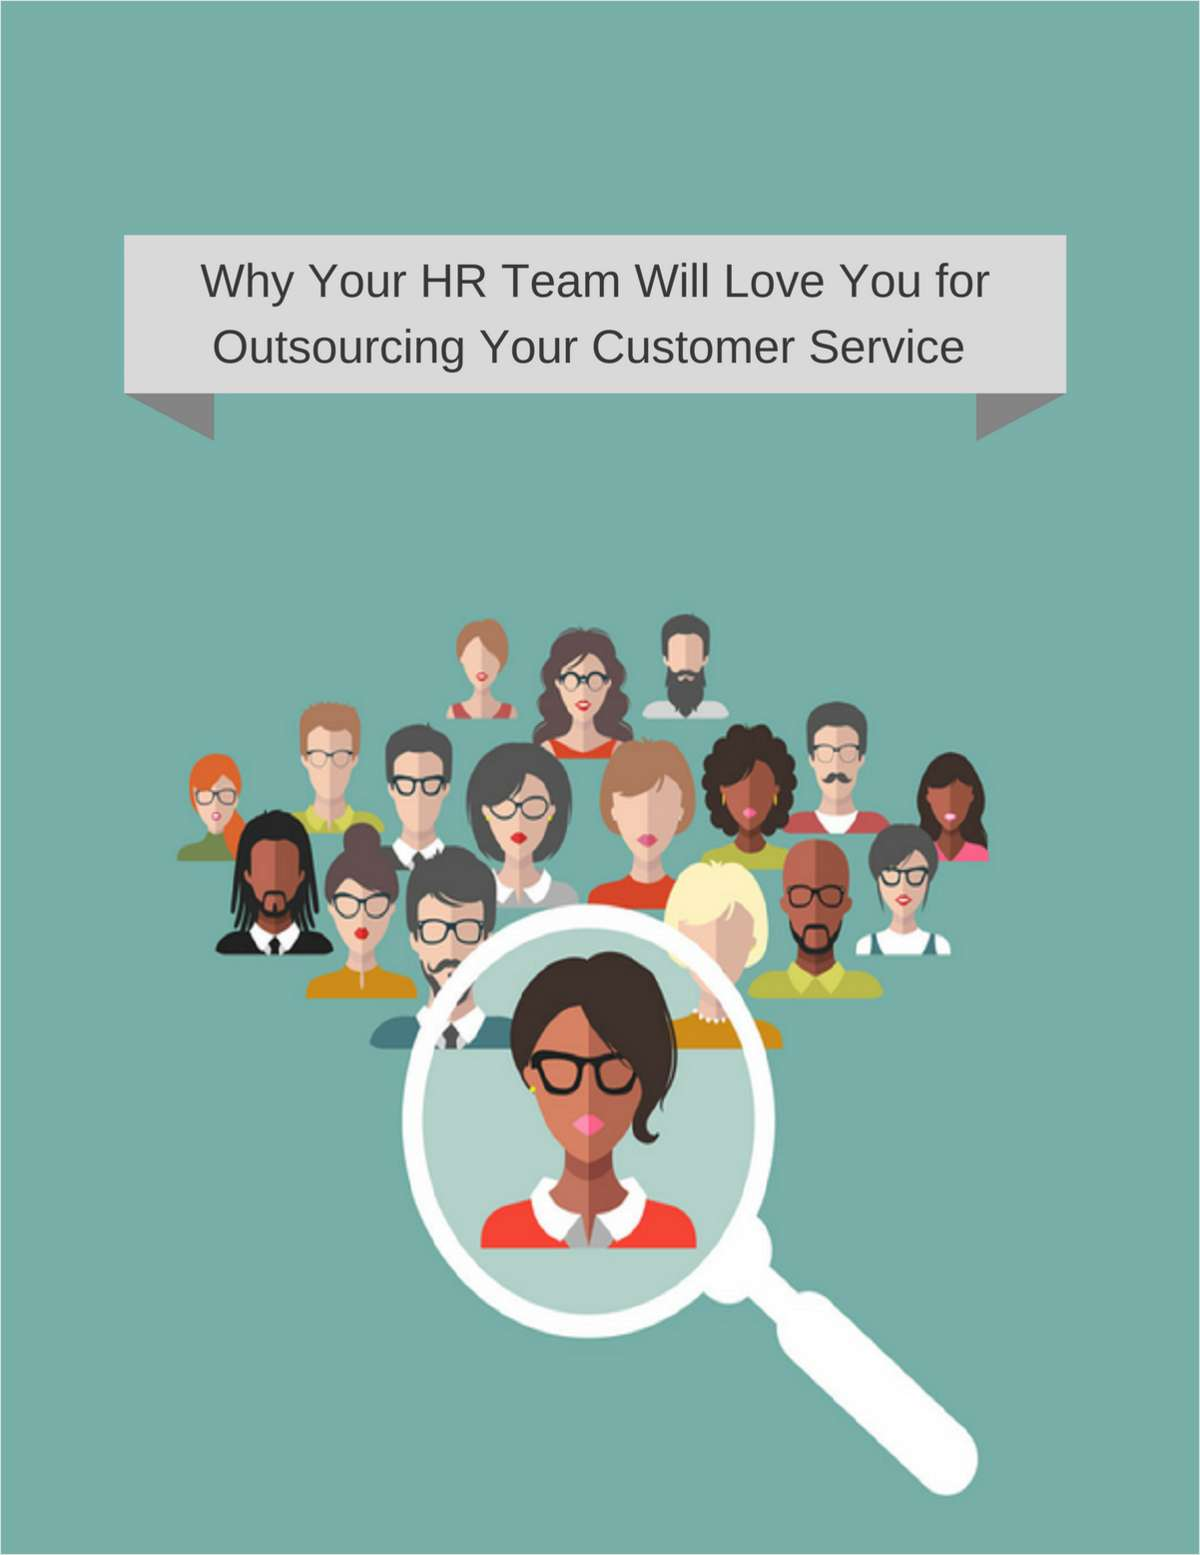 Why Your HR Team Will Love You for Outsourcing Your Customer Service